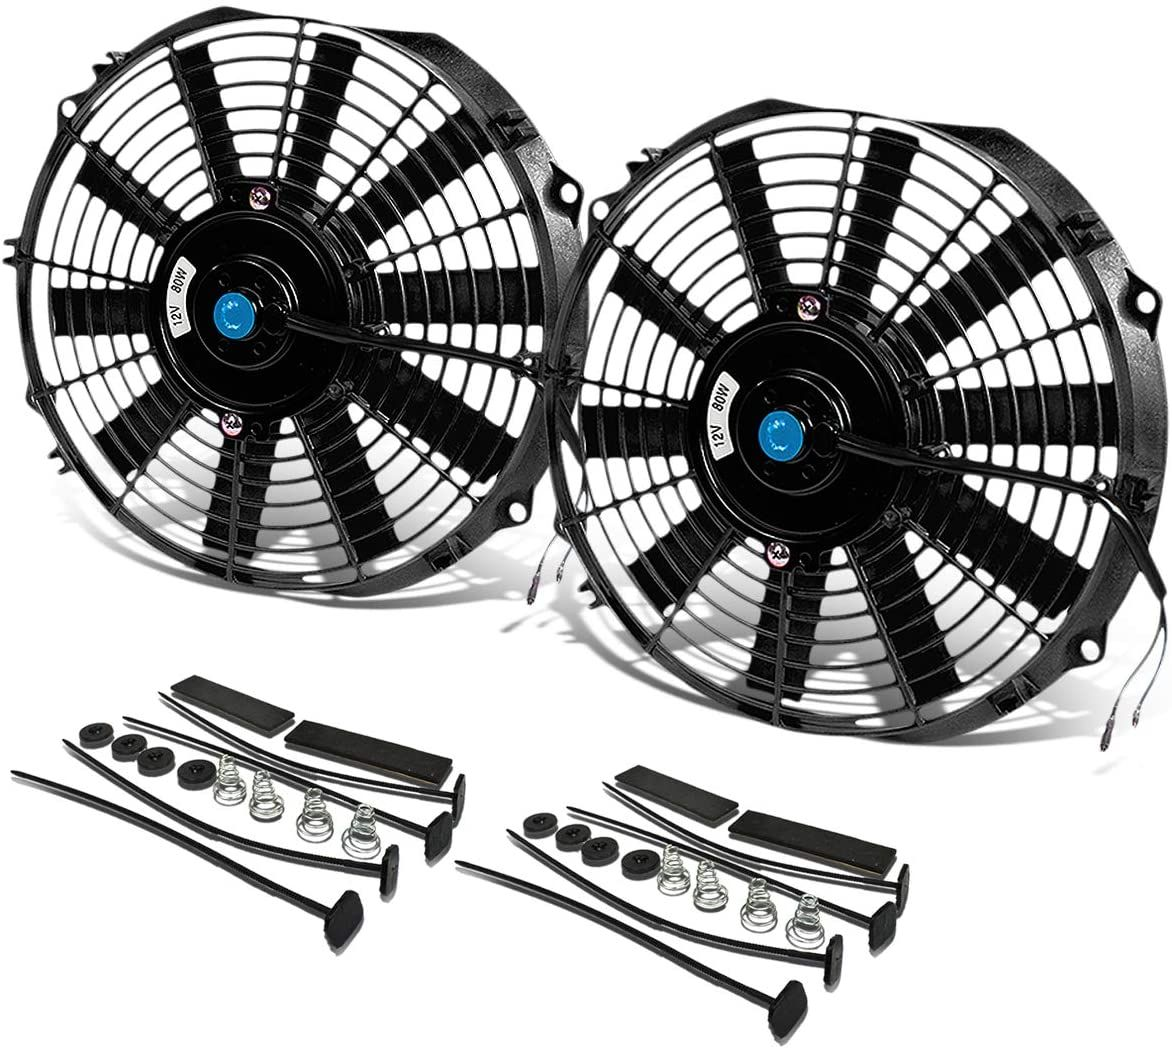 Car Fan 12v In 2020 Cooling Fan High Performance Cool Stuff